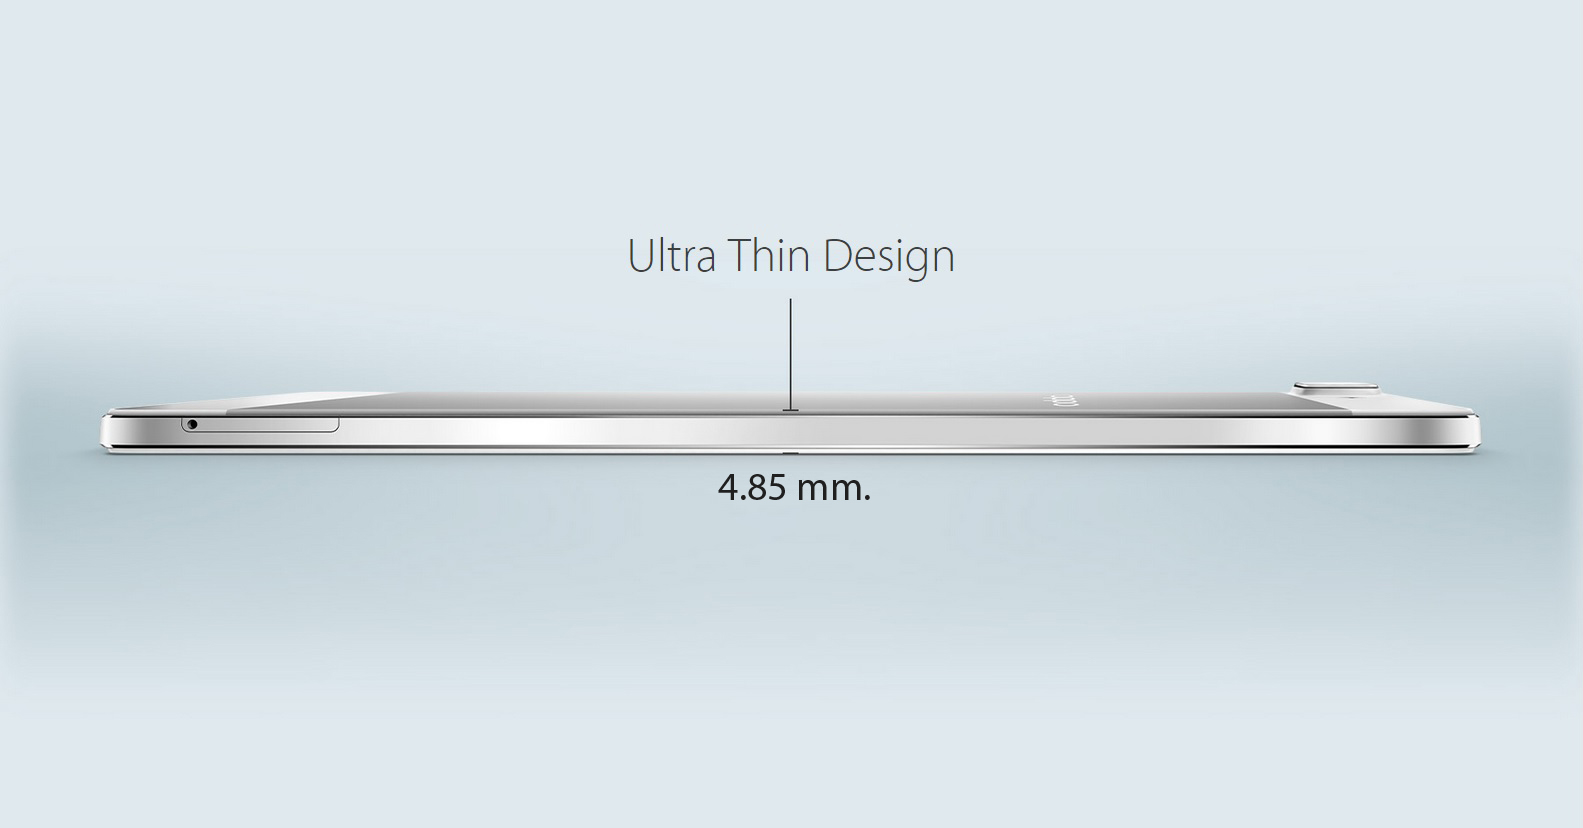 009_Ultra Thin Design